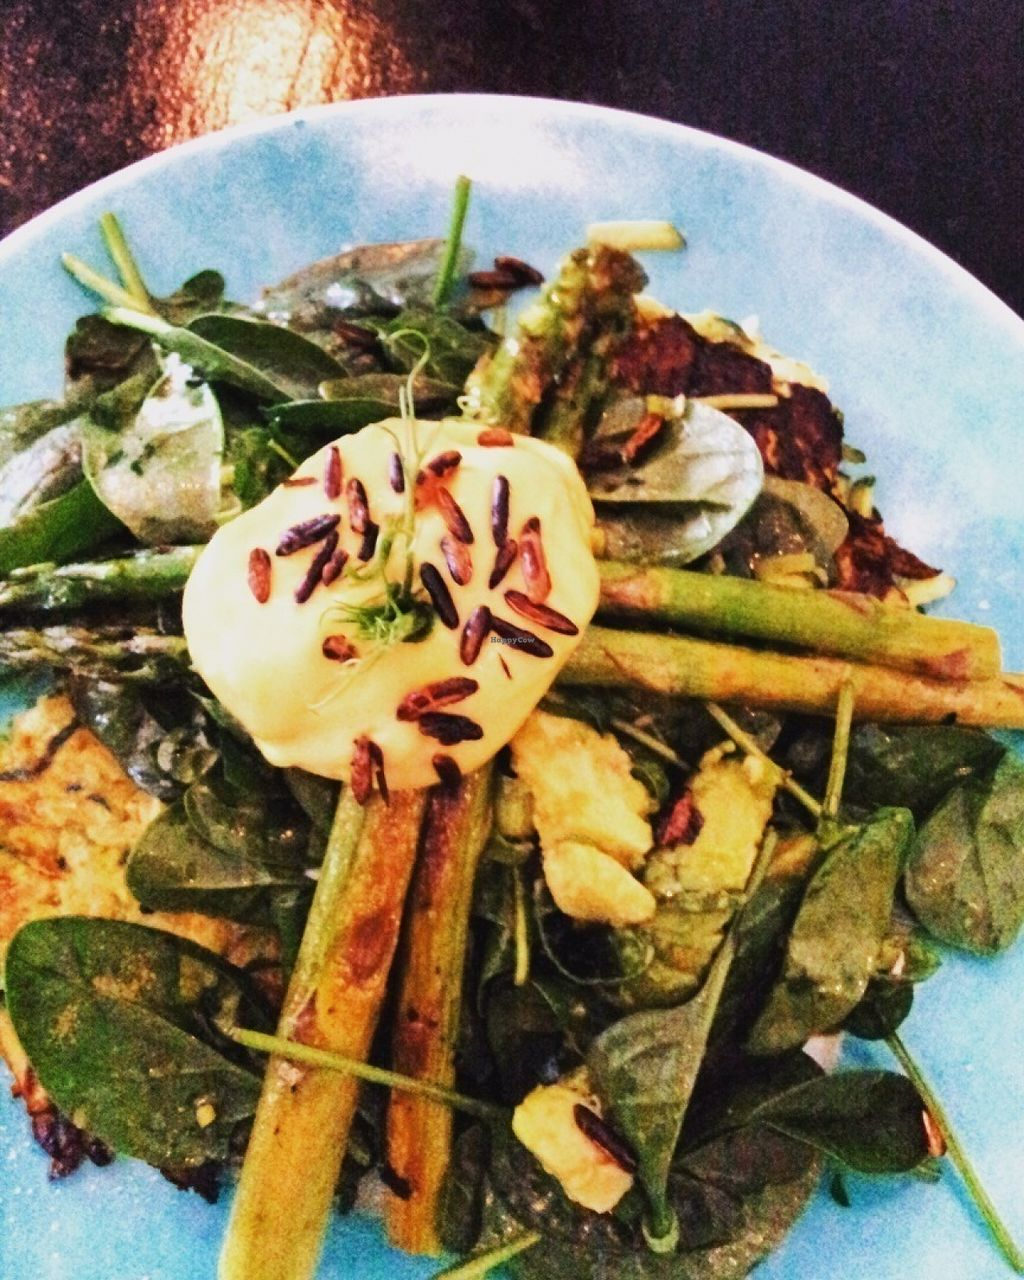 """Photo of CLOSED: Cloud Nine  by <a href=""""/members/profile/cseneque"""">cseneque</a> <br/>Zucchini hash with asparagus, avocado, spinach & vegan hollandaise sauce <br/> July 30, 2016  - <a href='/contact/abuse/image/68627/163279'>Report</a>"""